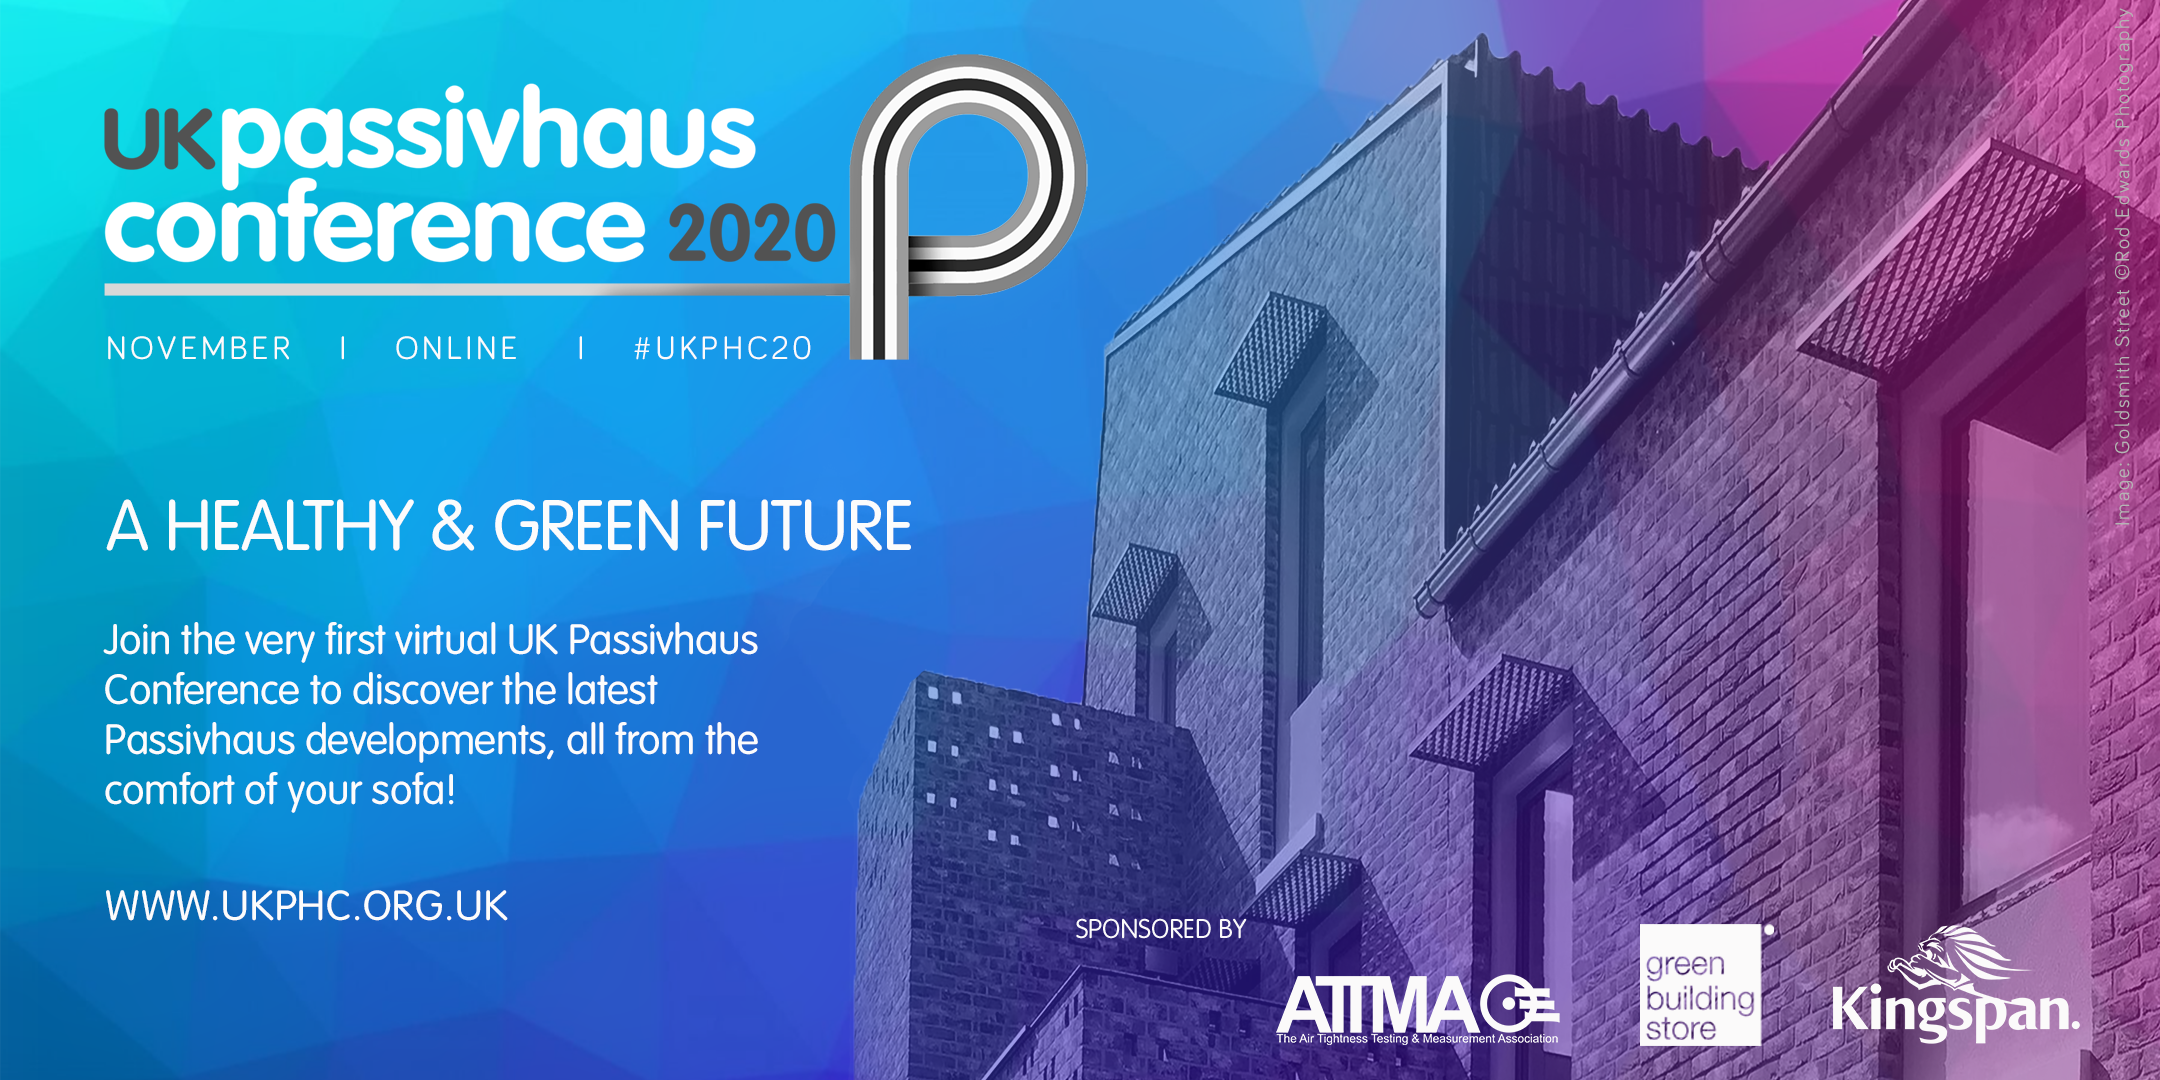 2020 UK Passivhaus Conference: A Healthy & Green Future